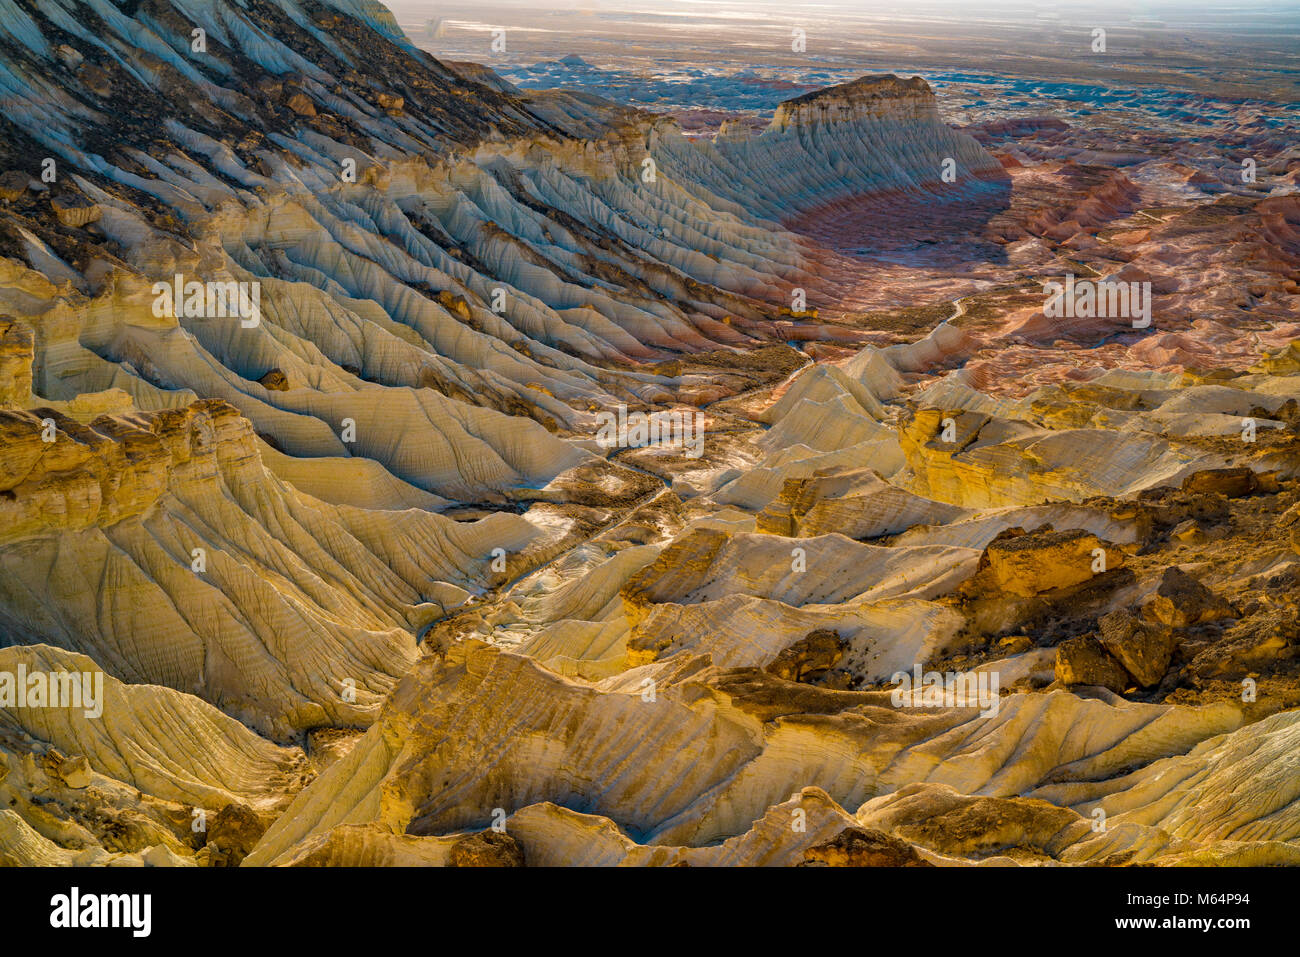 Yangikala Canyon, Turkmenistan Ust-Urt Plateau  naer Caspian Sea  Sunset - Stock Image